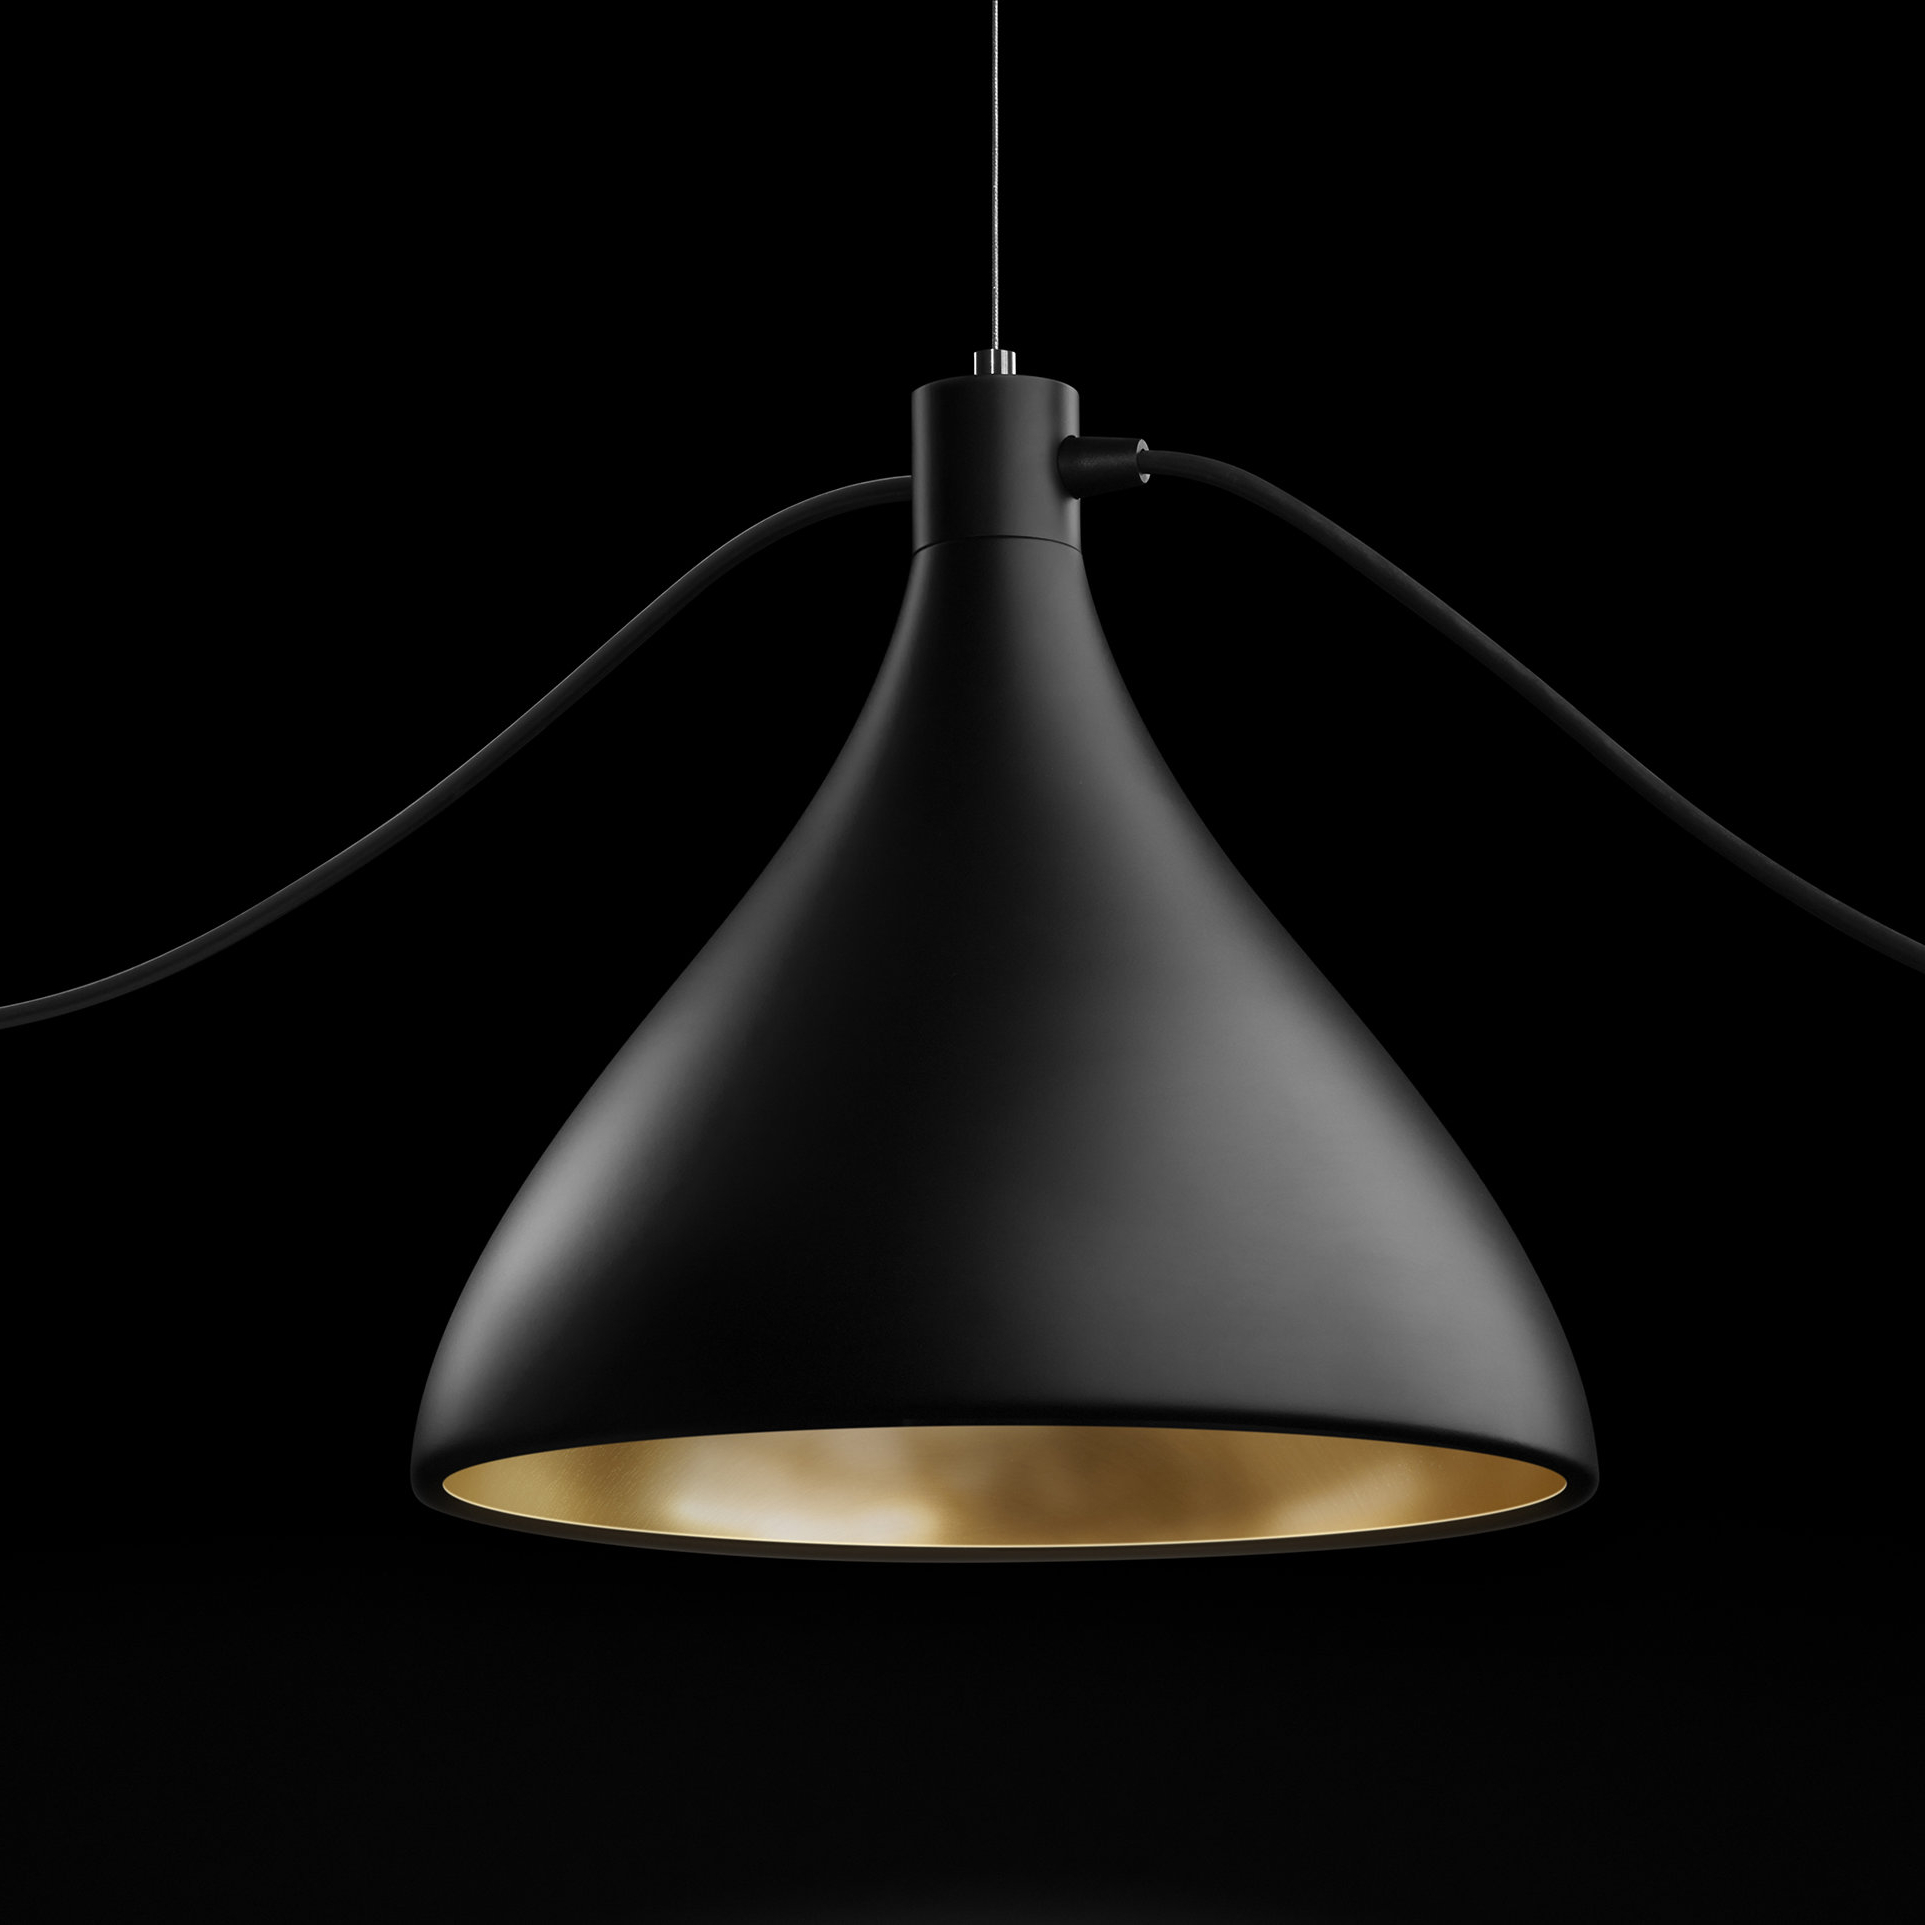 Ryker 1 Light Single Dome Pendants With Regard To Well Liked Pablo Designs Swell 1 Light Single Bell Pendant & Reviews (View 6 of 25)